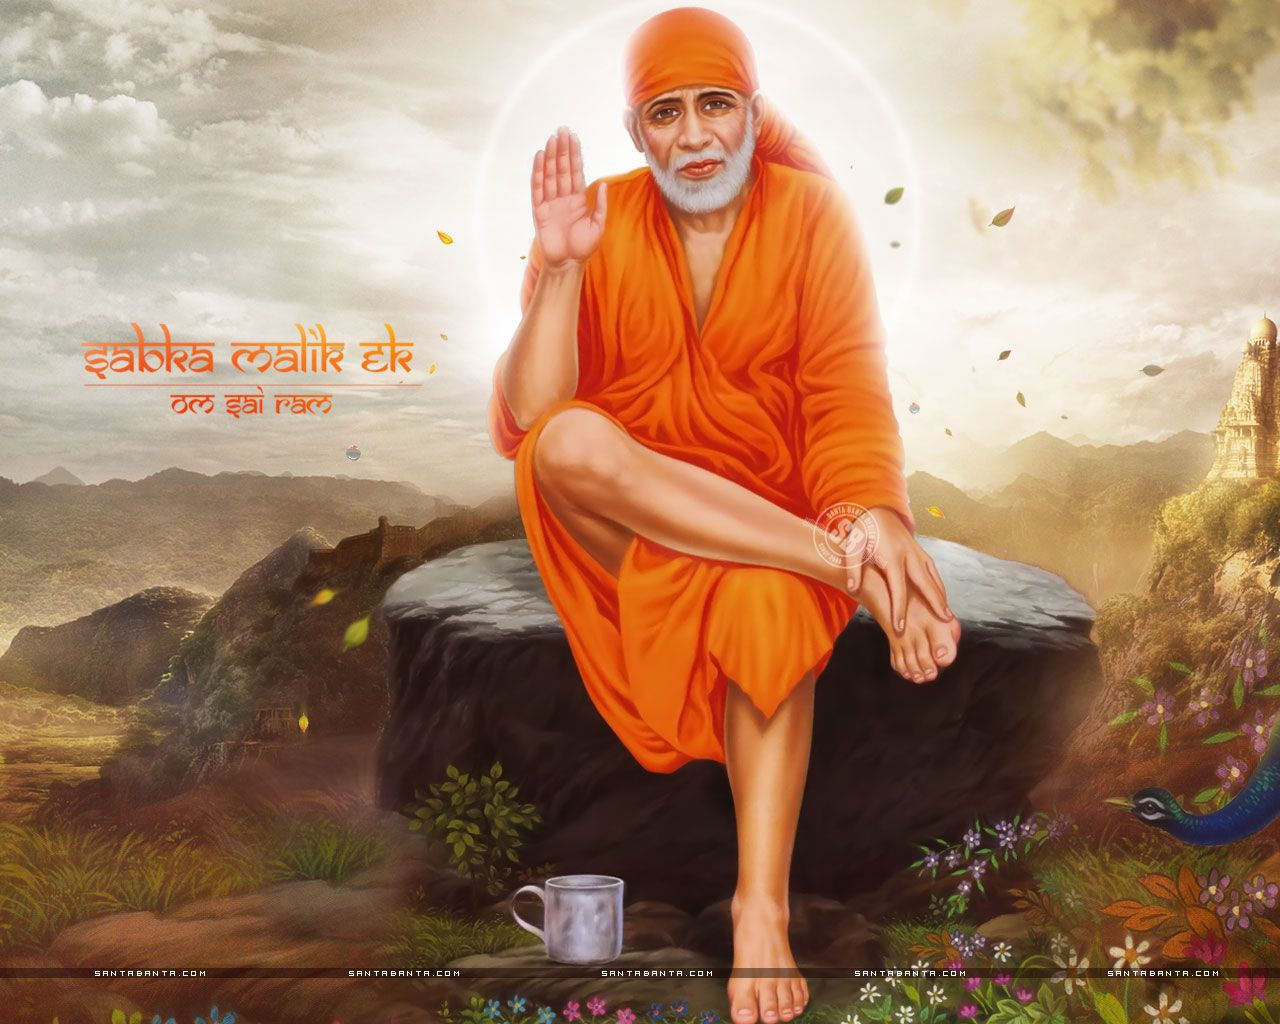 Sai Baba Hd Wallpaper Full Size Download Sai Baba Wallpapers Sai